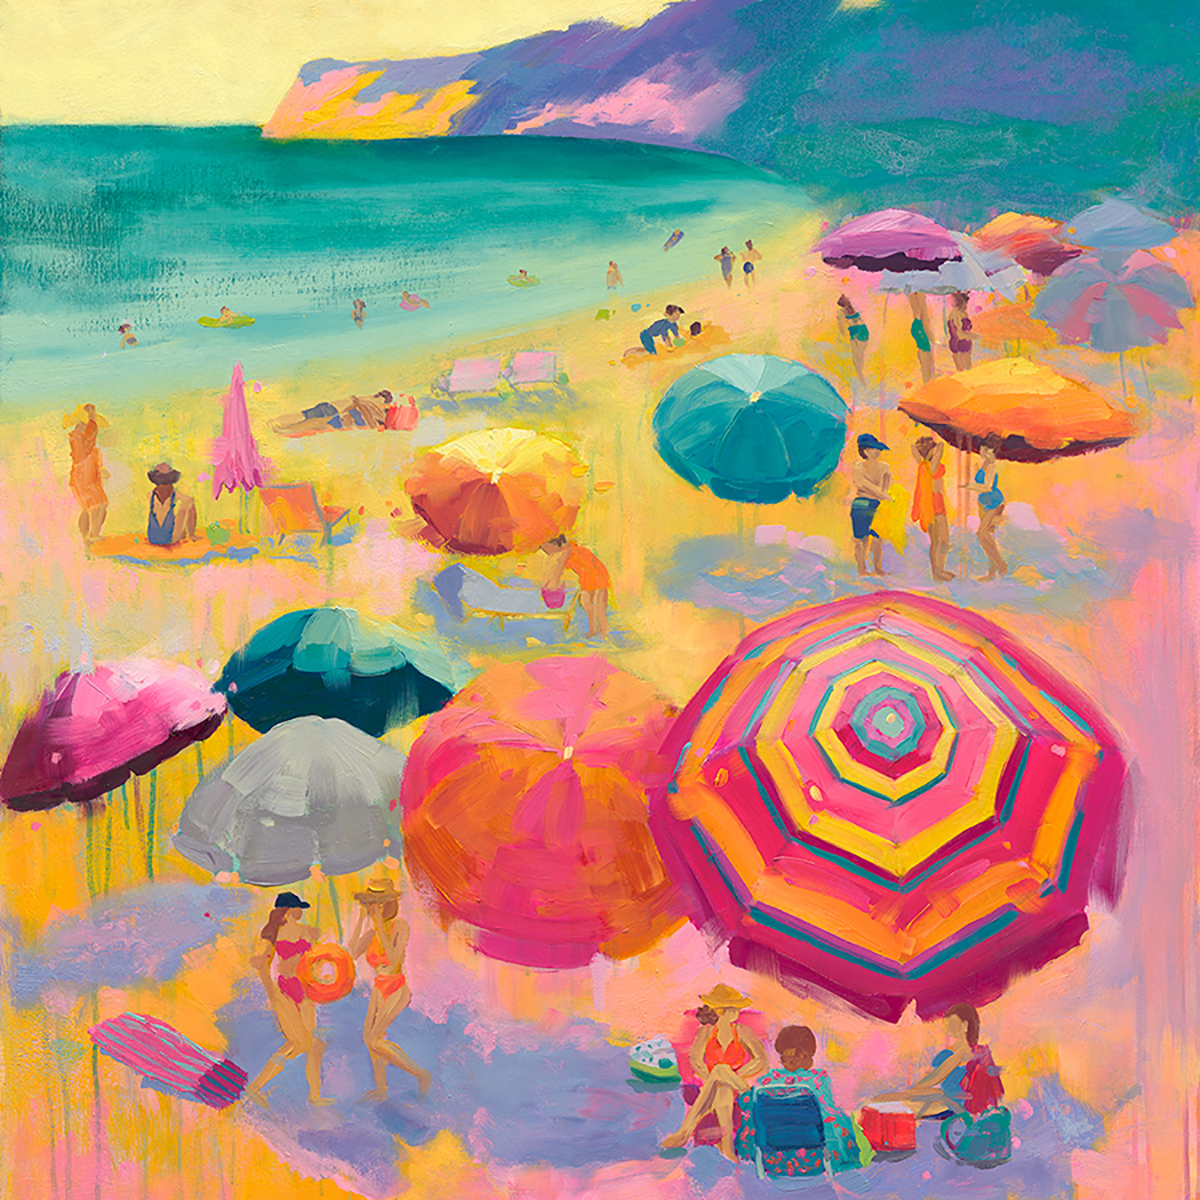 Cotton Candy Lemonade painting by Stephanie Schlatter